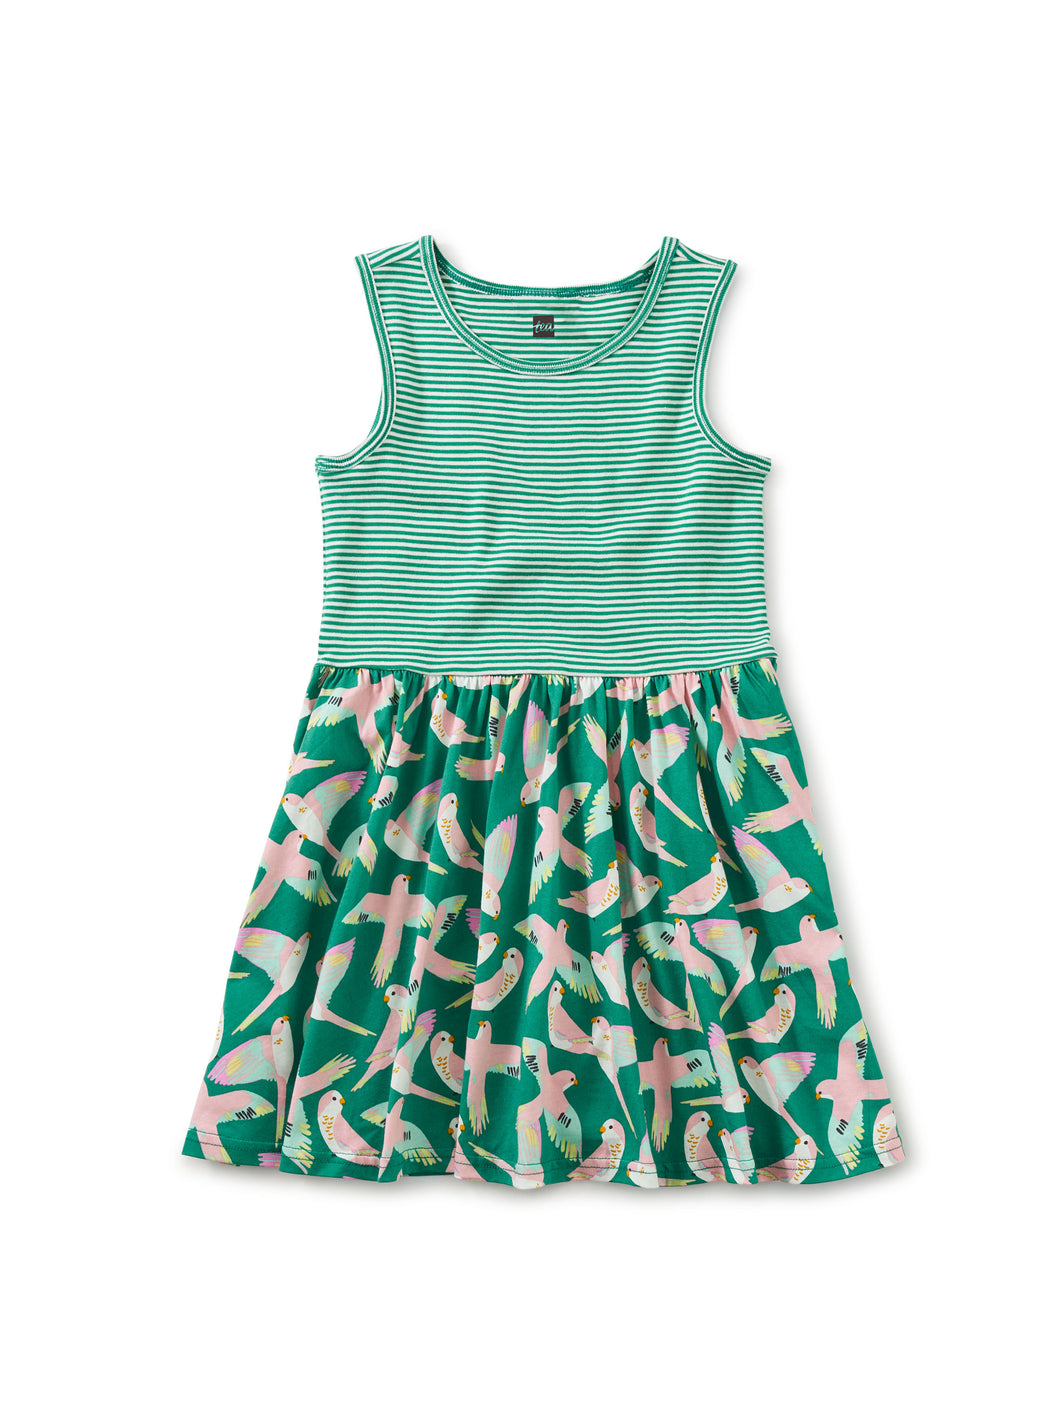 Print Mix Skirted Dress - Parrot Polka in Viridis